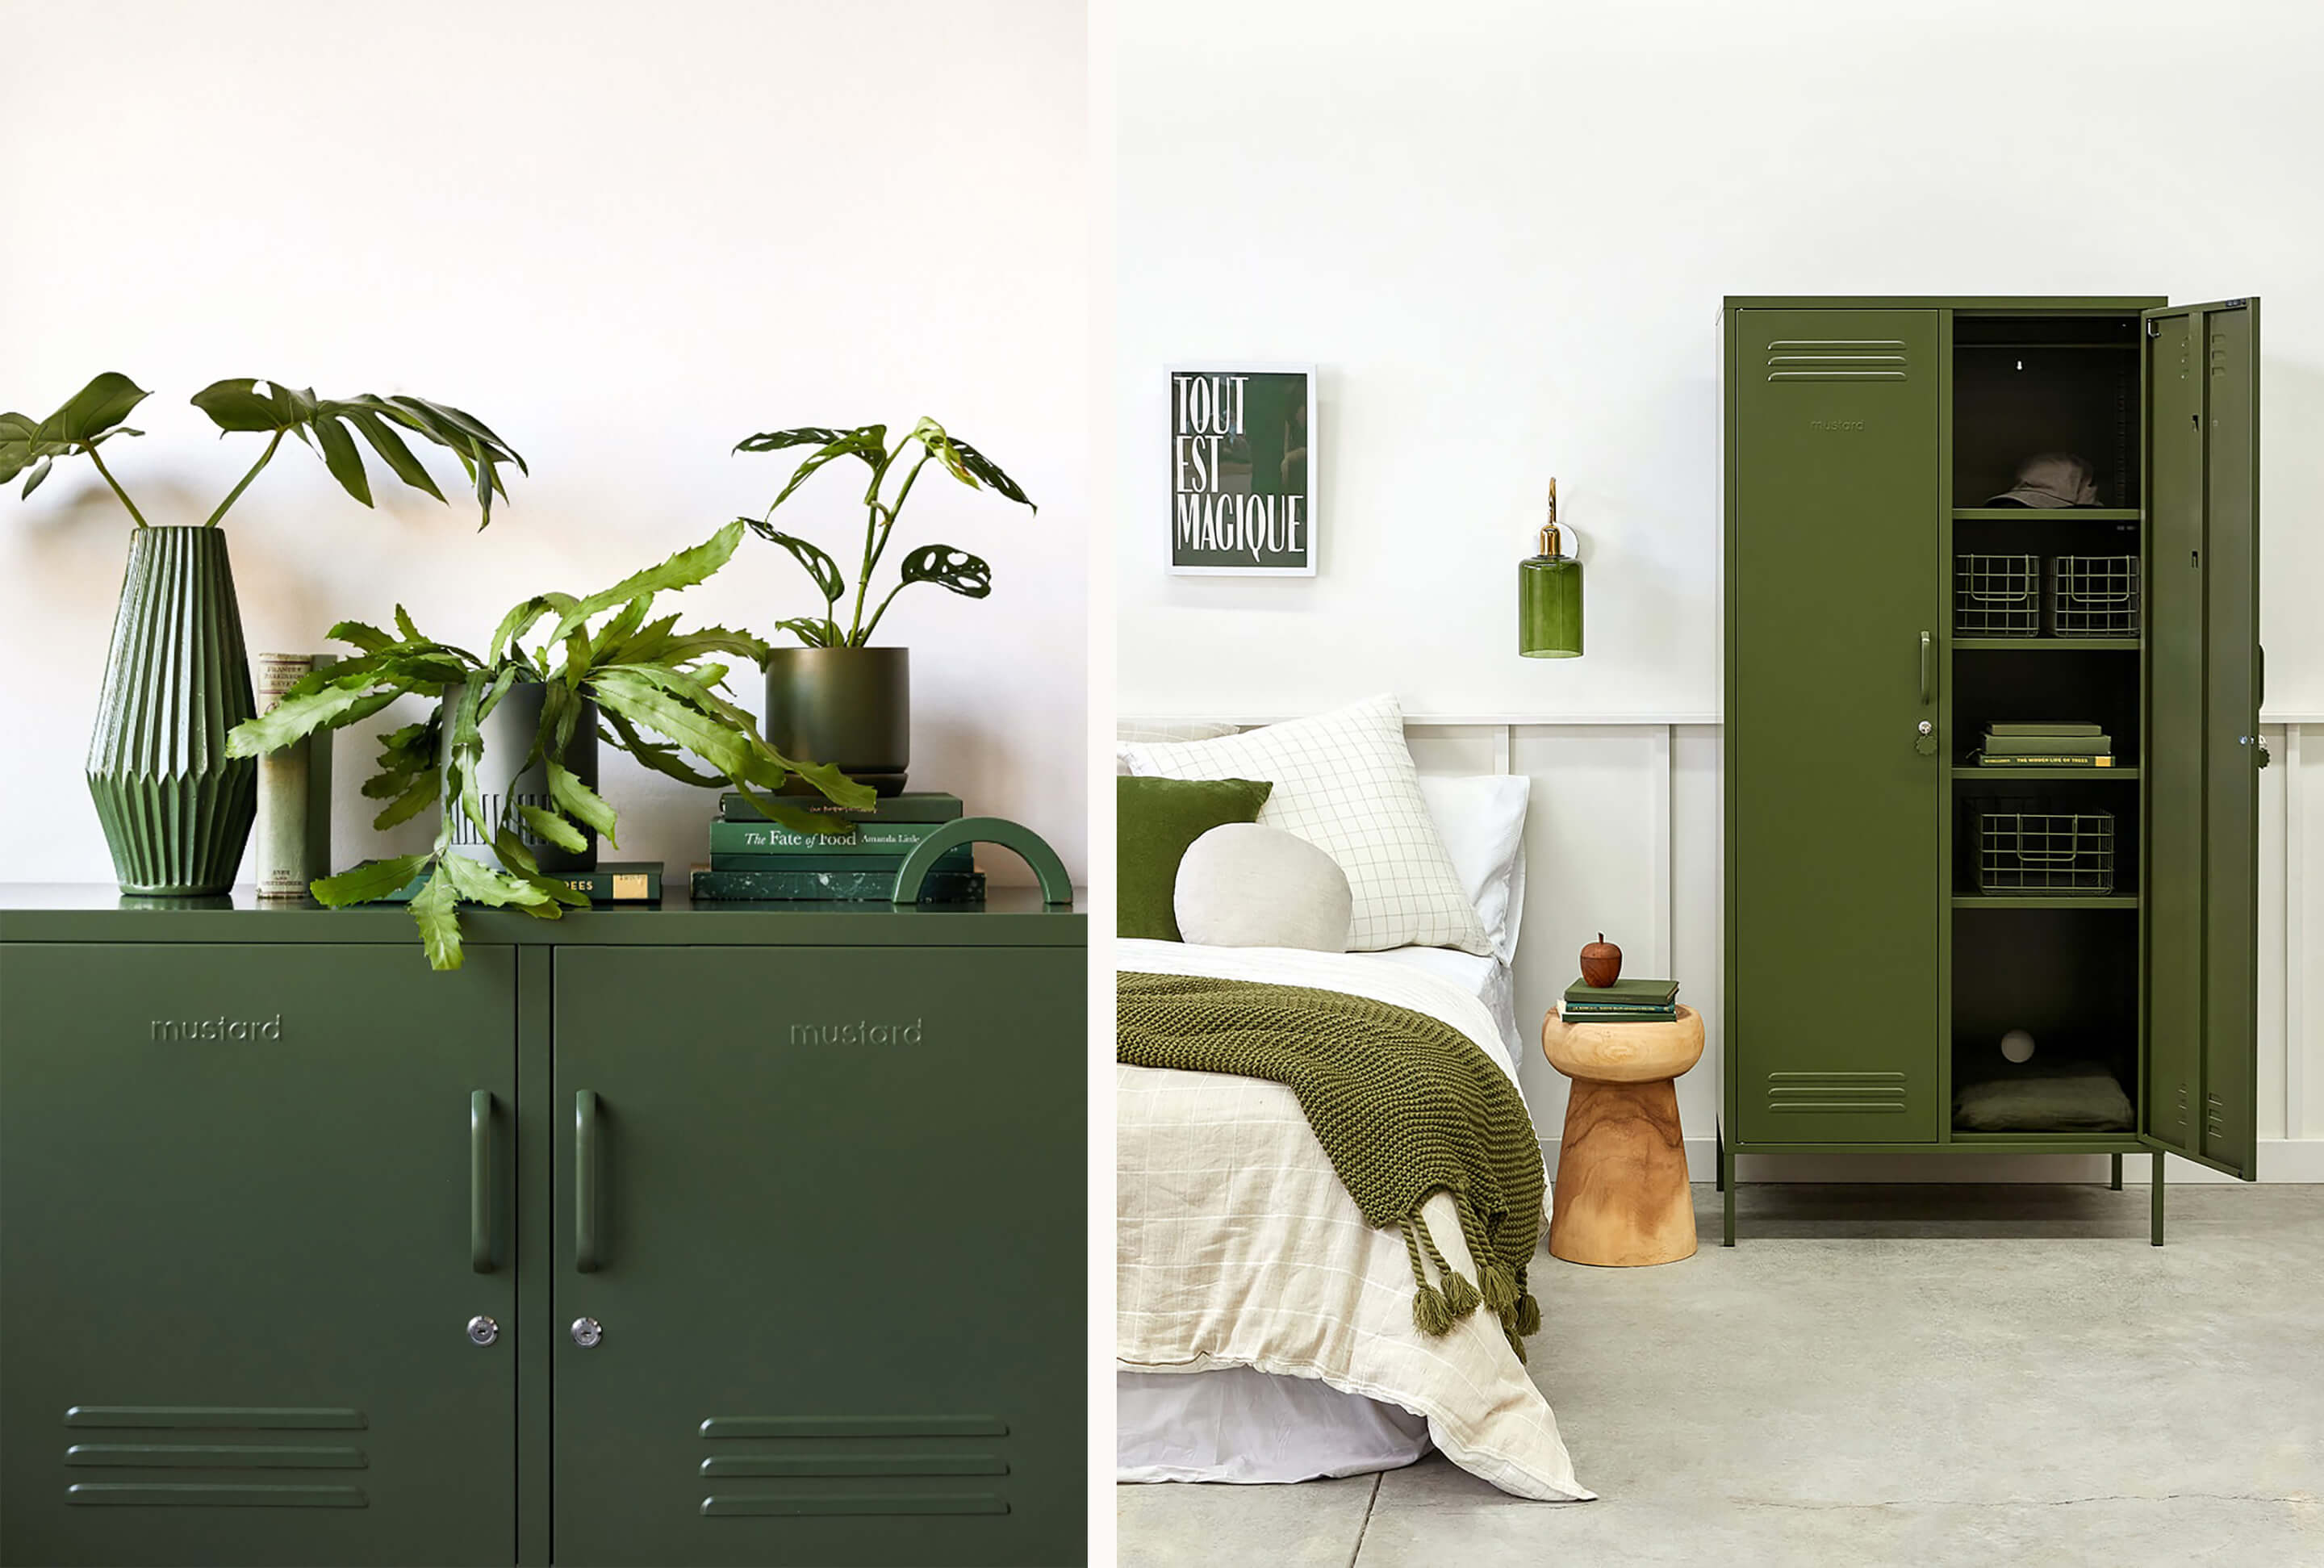 Mustard Made lockers now available to shop online at Life Interiors - great for stylish storage in your home office, living areas, or bedrooms!